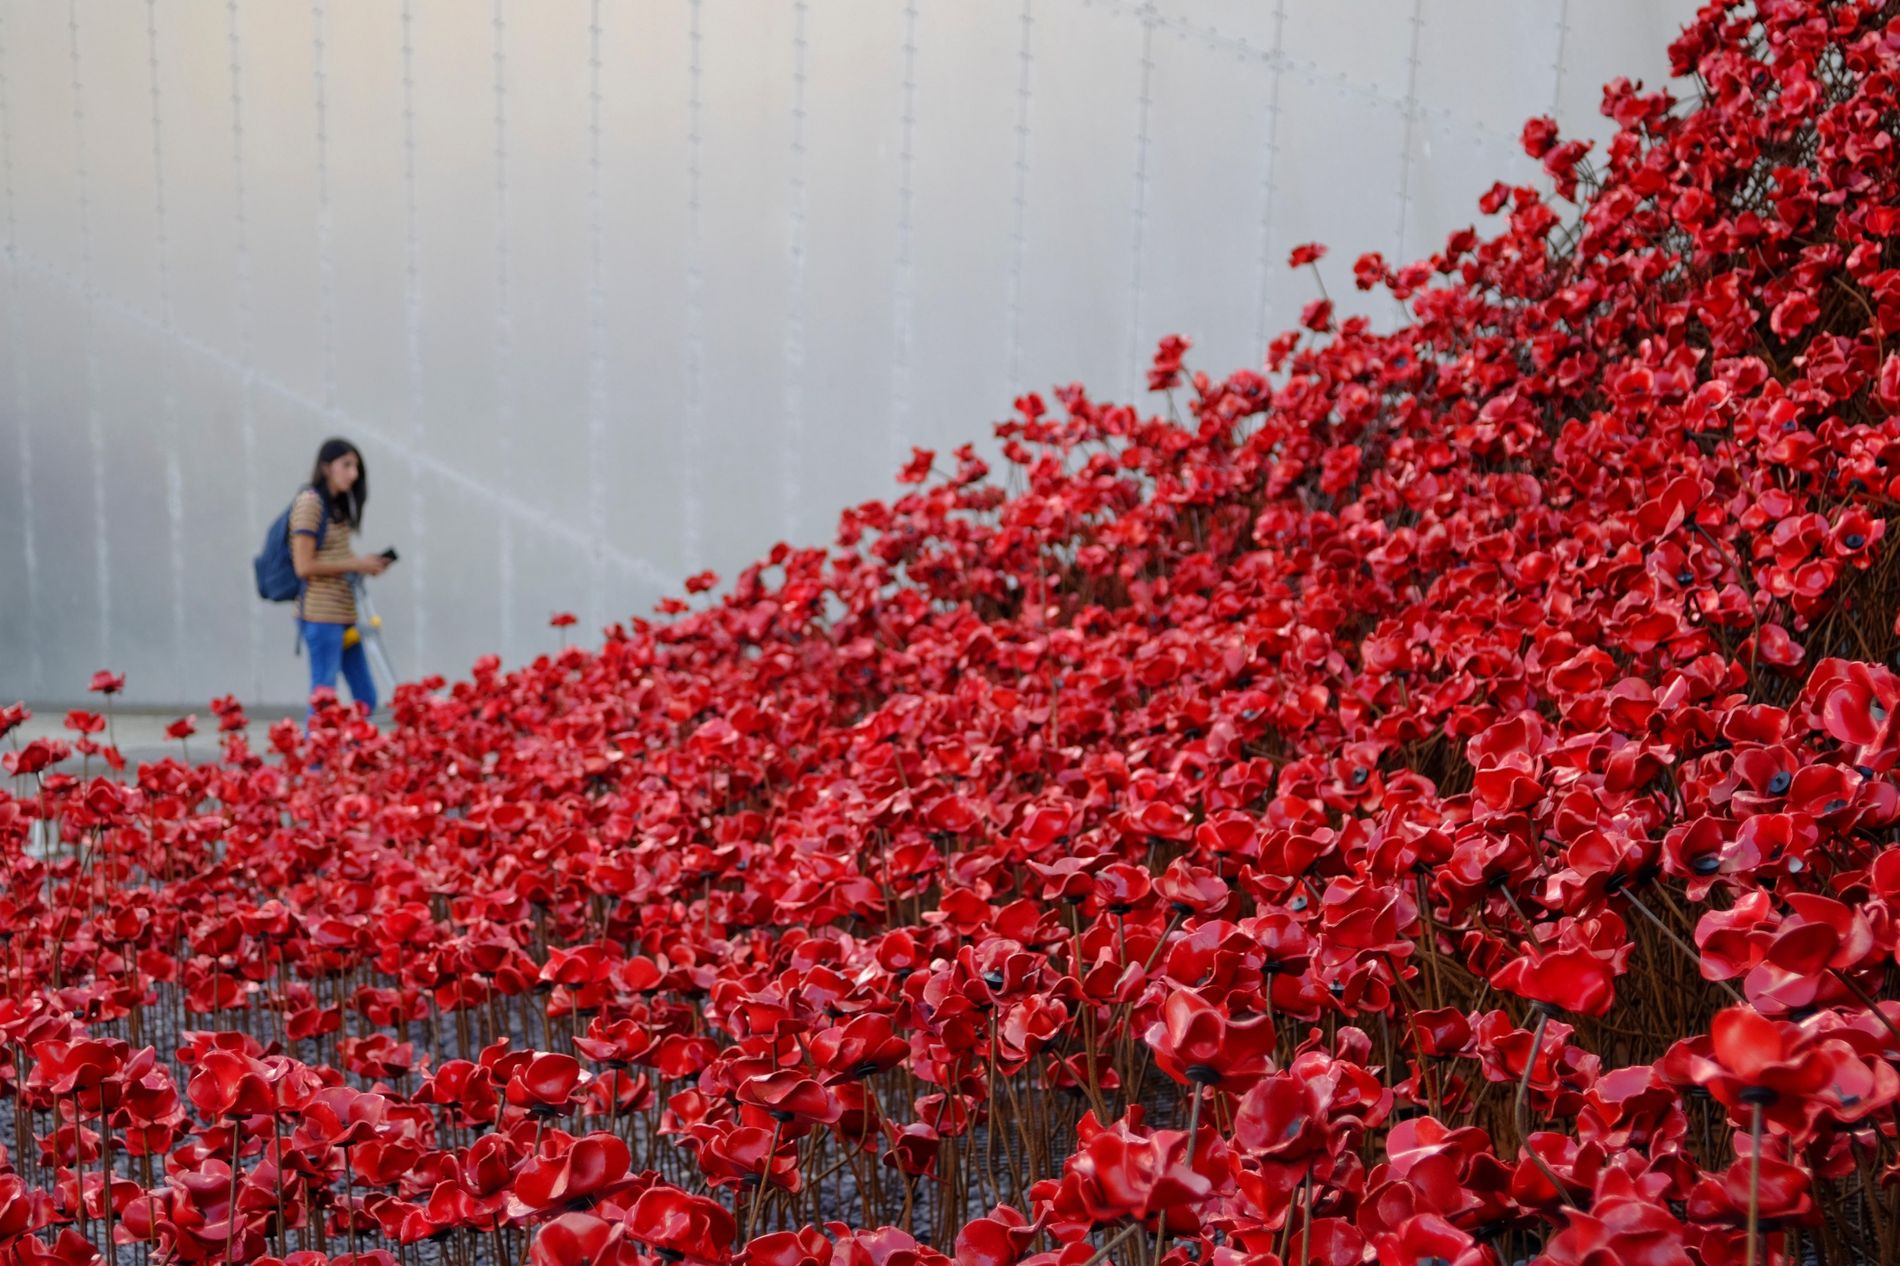 The 'Weeping Window' installation at the Imperial War Museum in Salford was one of several by artist Paul Cummins and exhibitor Tom Piper – marking the lives lost during World War 1 with the use of ceramic poppies. The flower is just one of many symbols of remembrance that came into being following the 1914-1918 war.